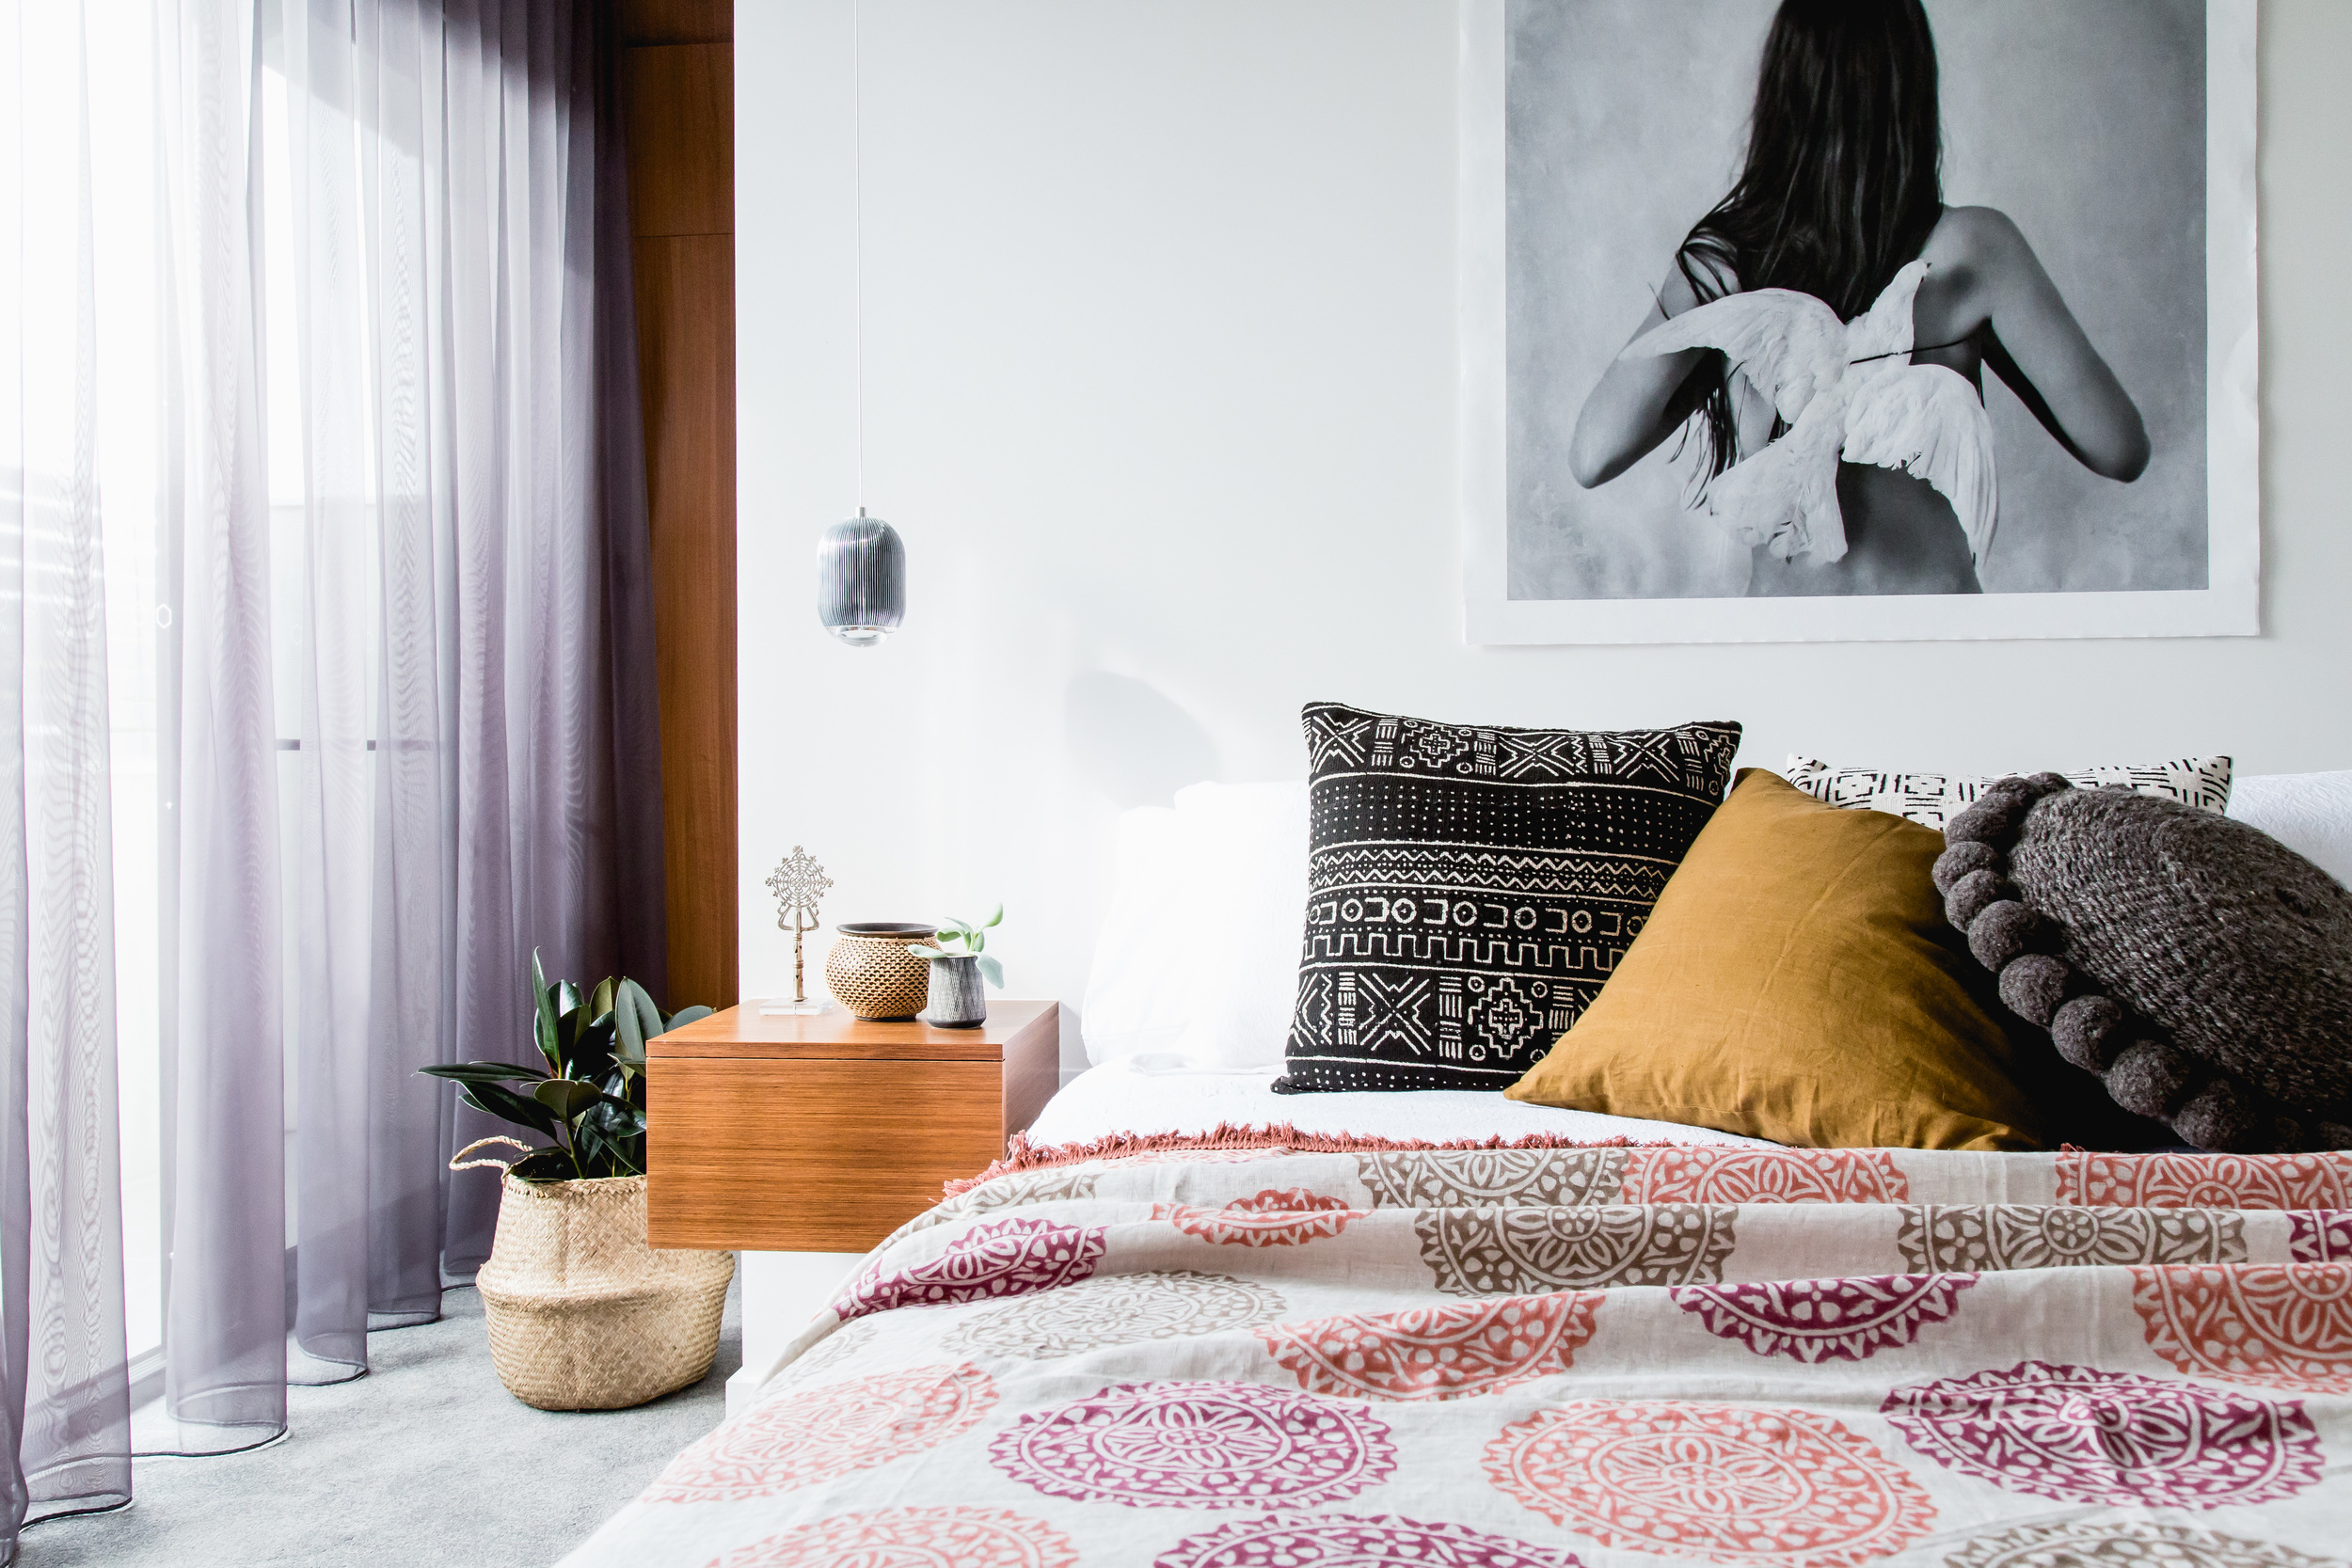 Styling by Michelle Hart / Bask Interiors